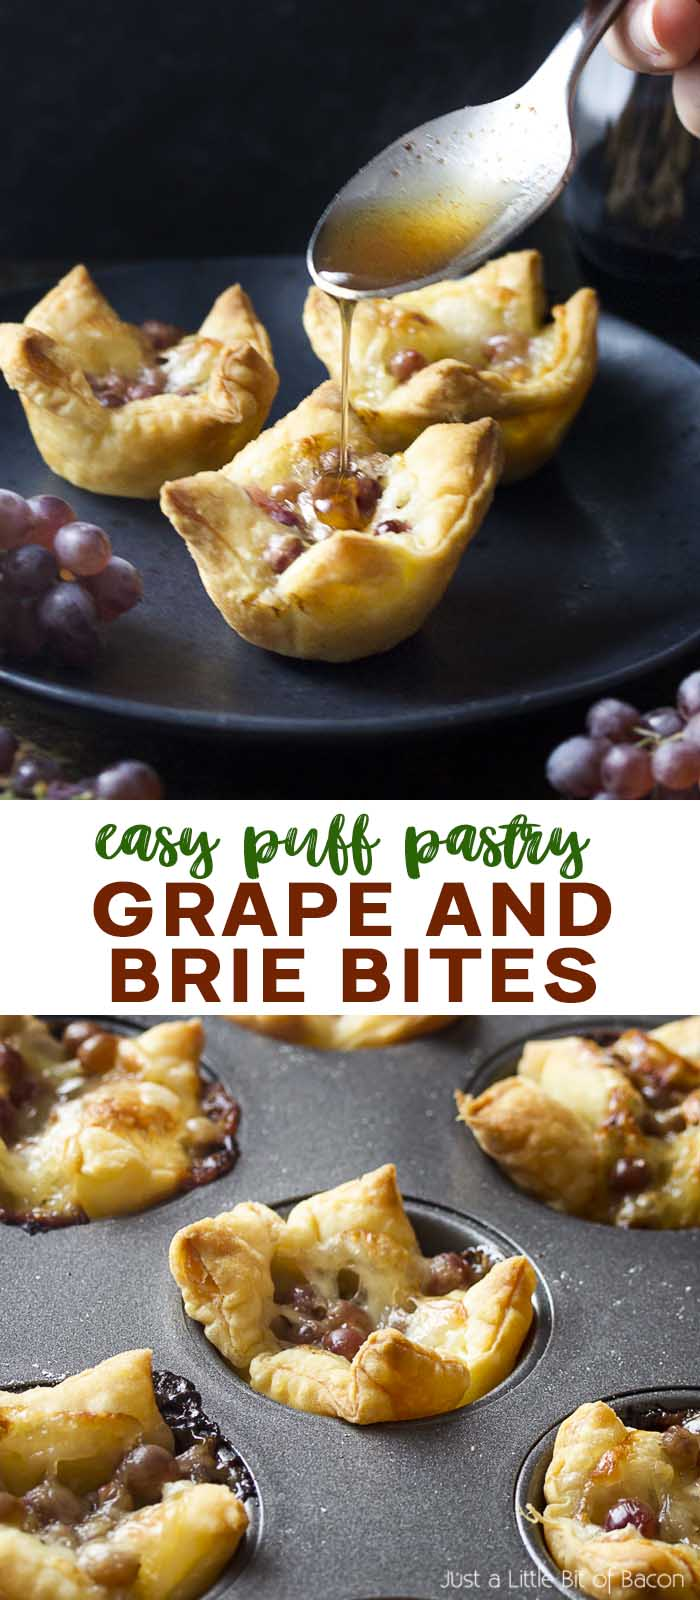 Two views of puff pastry tarts with text overlay - Grape and Brie Bites.